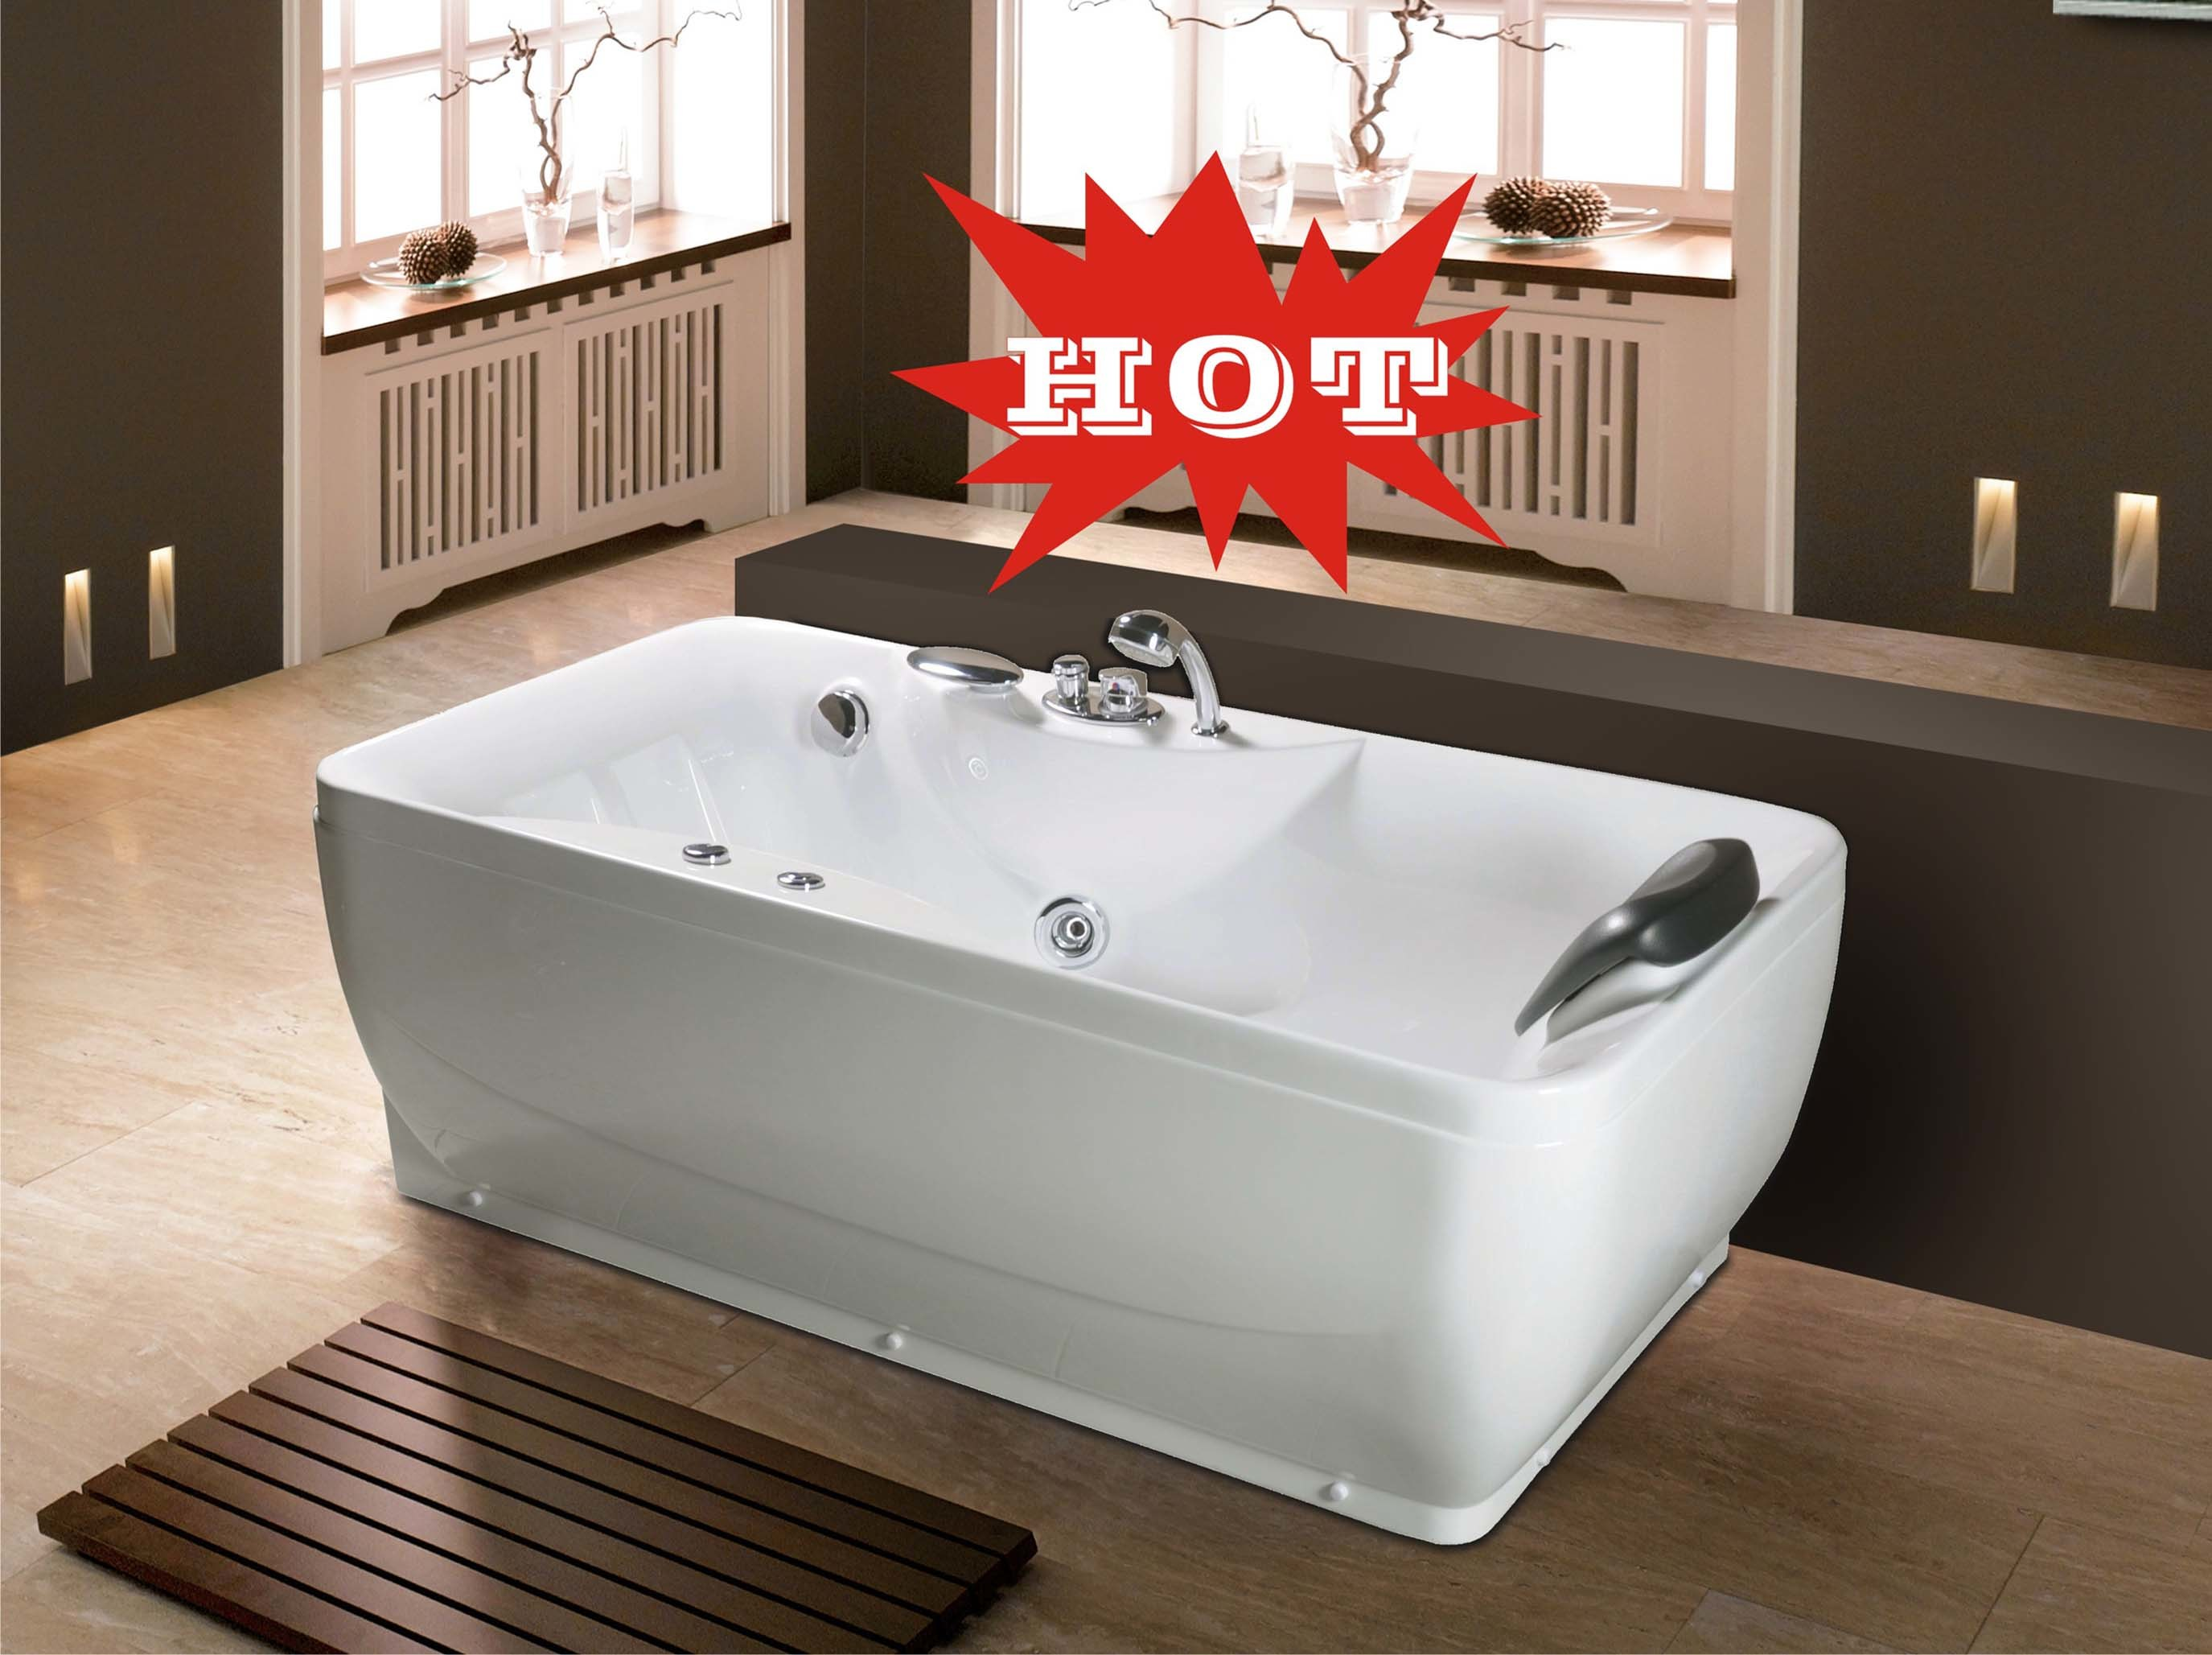 Vasca Da Bagno In Inglese.Bathtub With Shower Prt Porter Teuco Vasca Da Bagno English